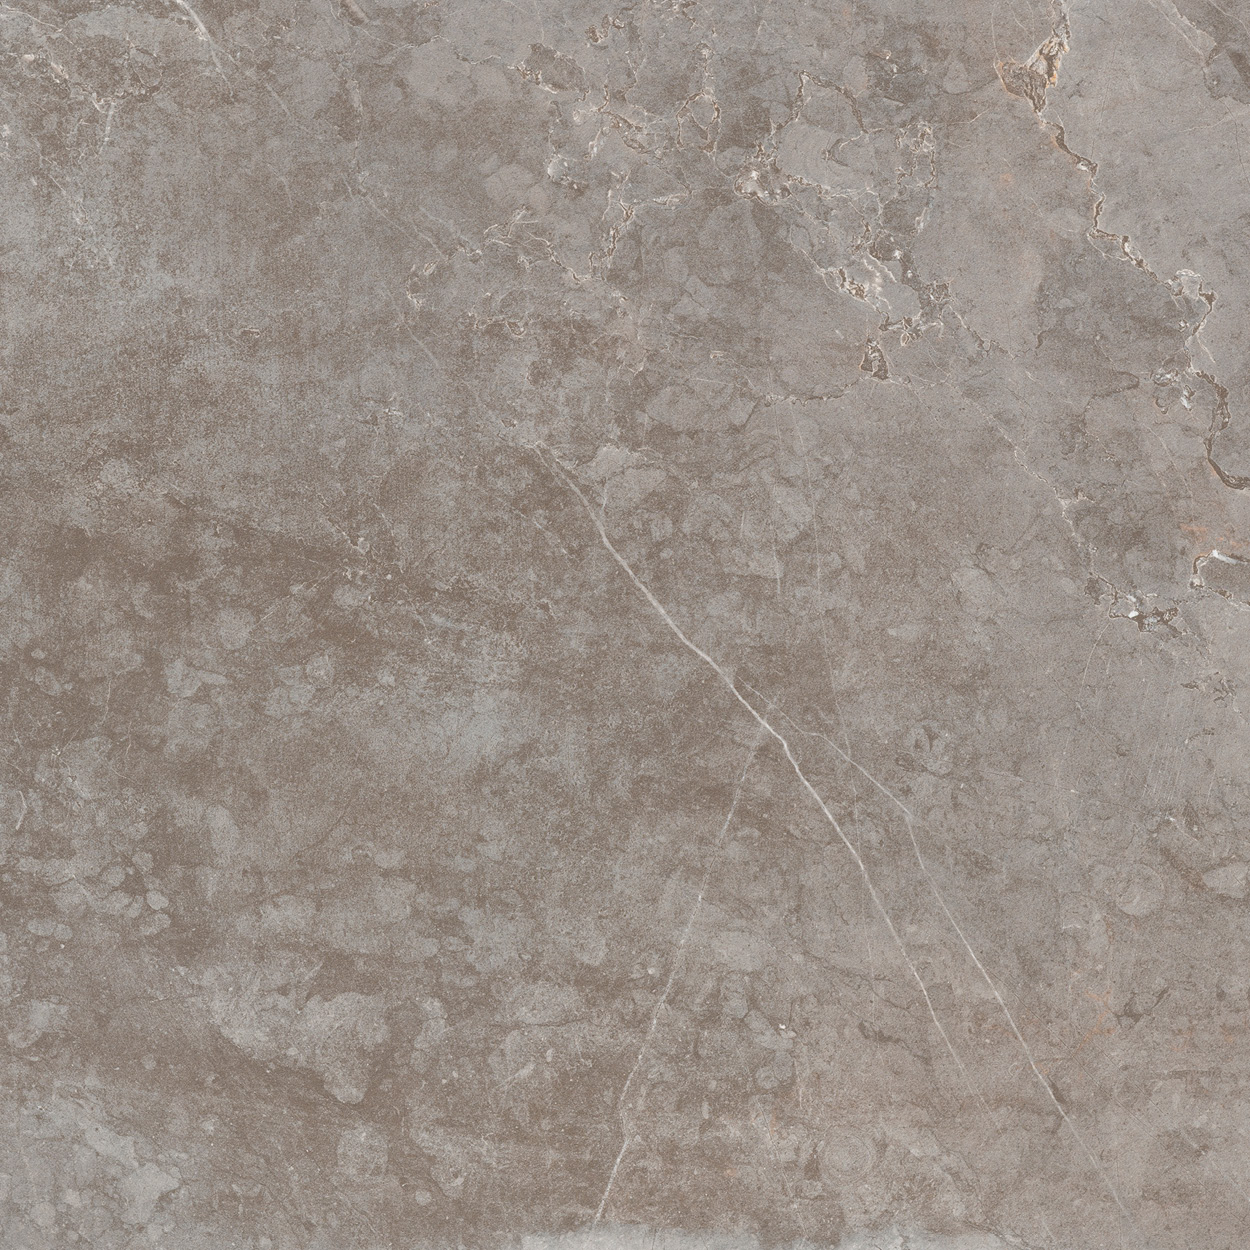 32 X 32 Evo Stone Natural Honed finished Rectified Porcelain Tile (SPECIAL ORDER ONLY)